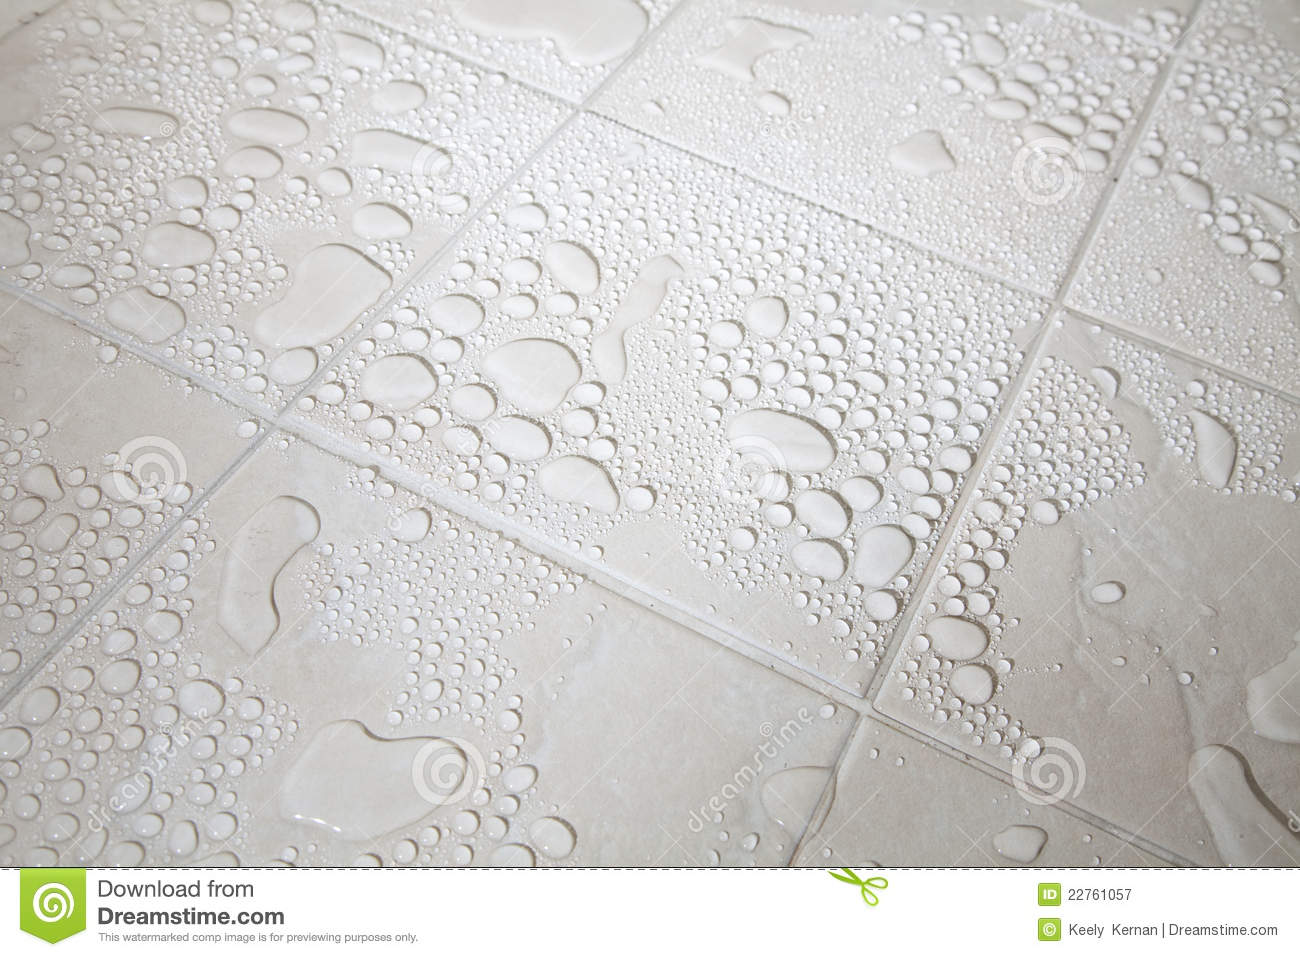 Tiled floor and water droplets stock image image of for On the floor